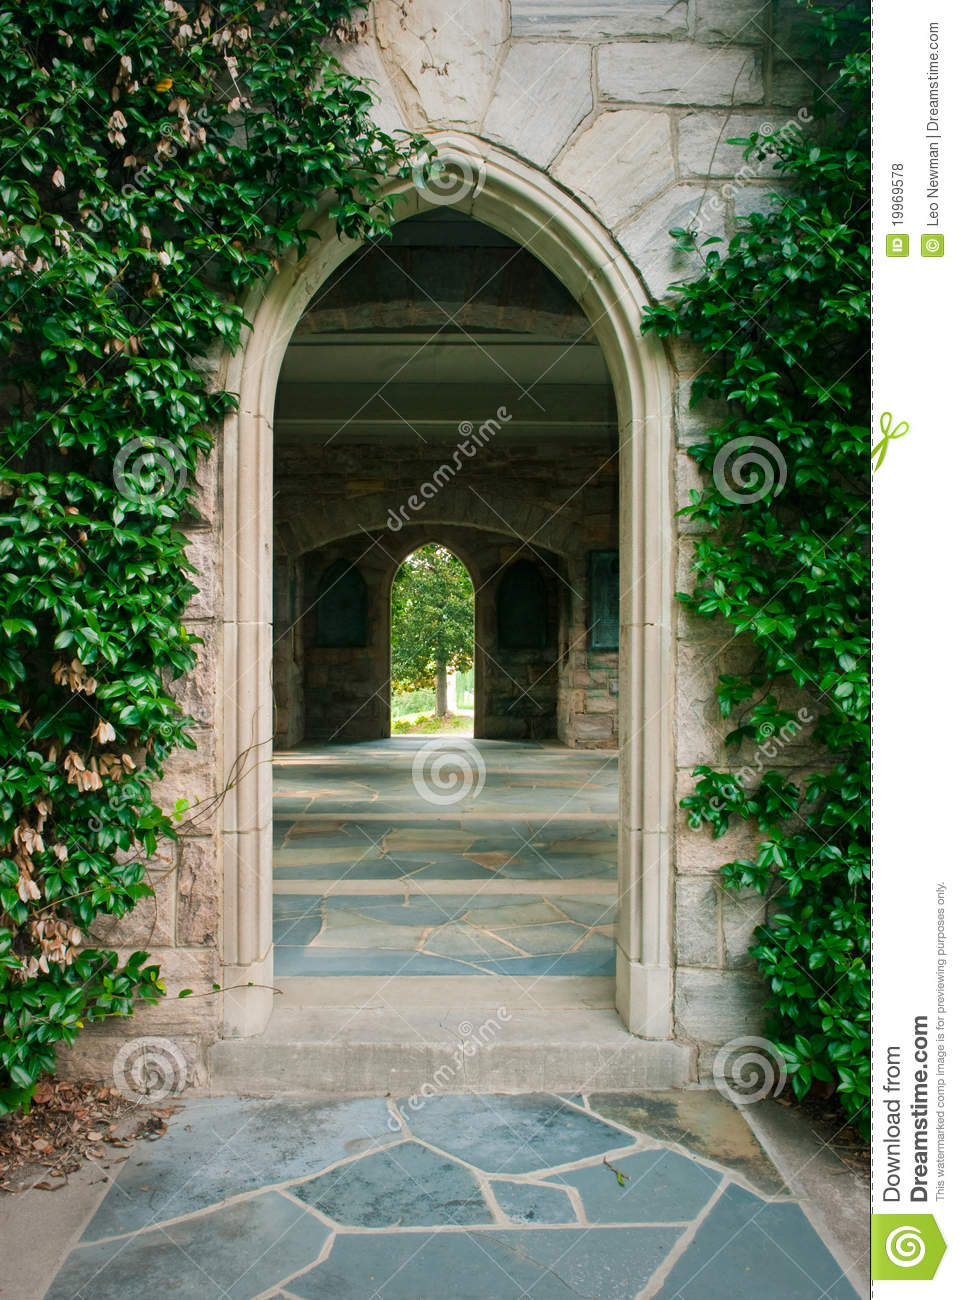 Stone Arch Doorway Royalty Free Stock Photos Image 19969578